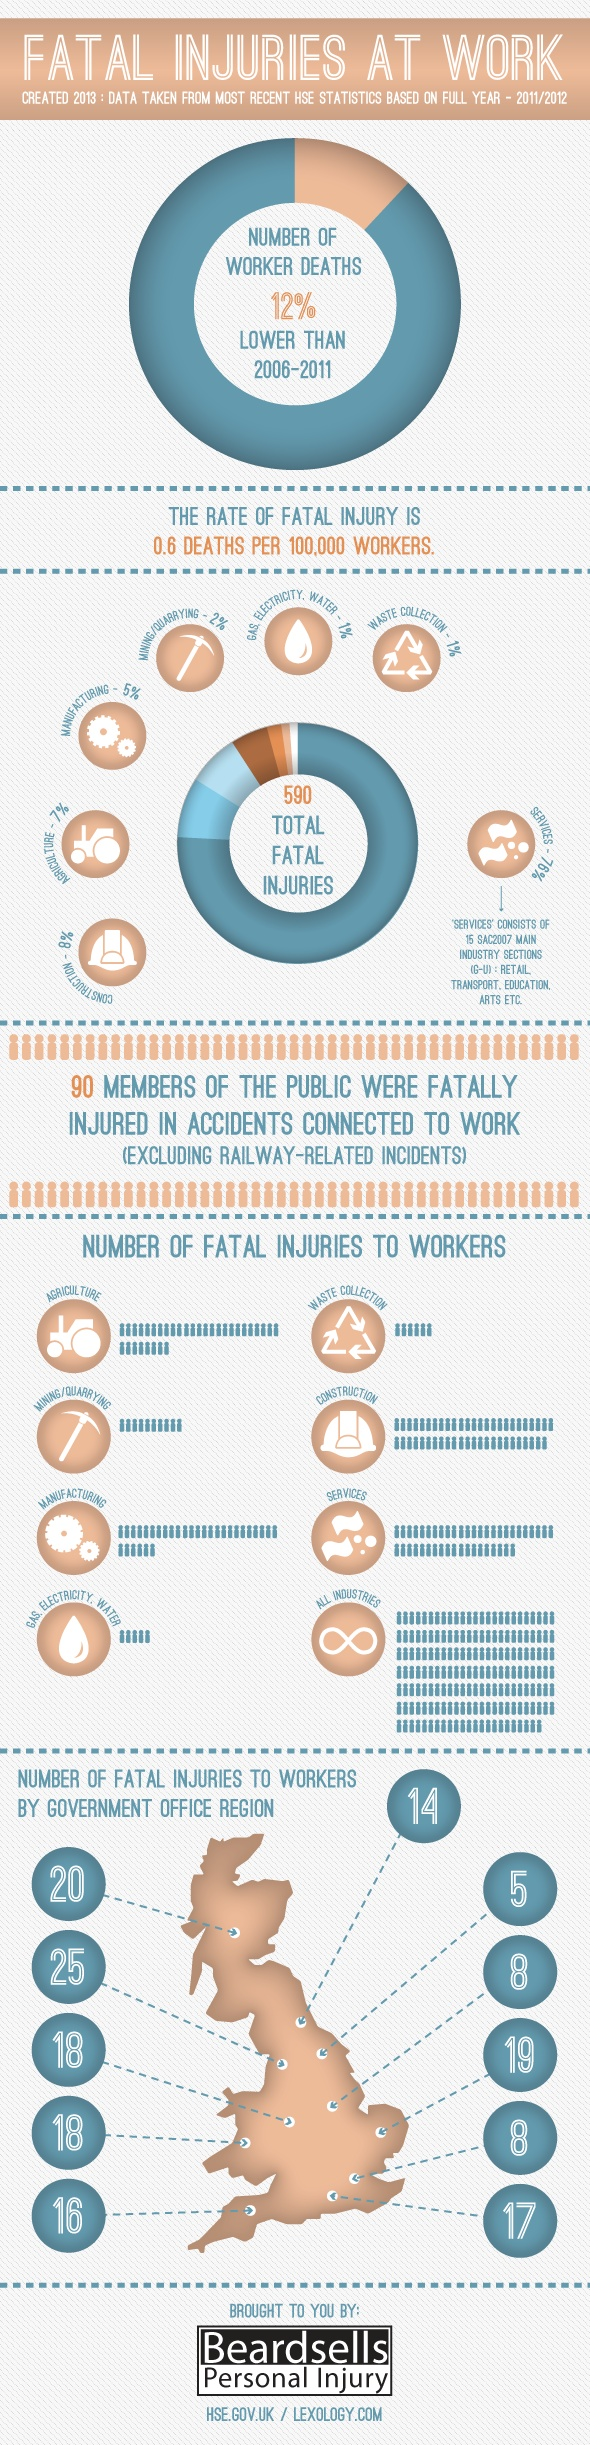 Want to know what the most common injuries at work are in the UK? Look at this blog post from Simply Lawyers UK. http://www.simplylawyers.co.uk/most-common-accidents-and-injuries-at-work-in-the-uk/